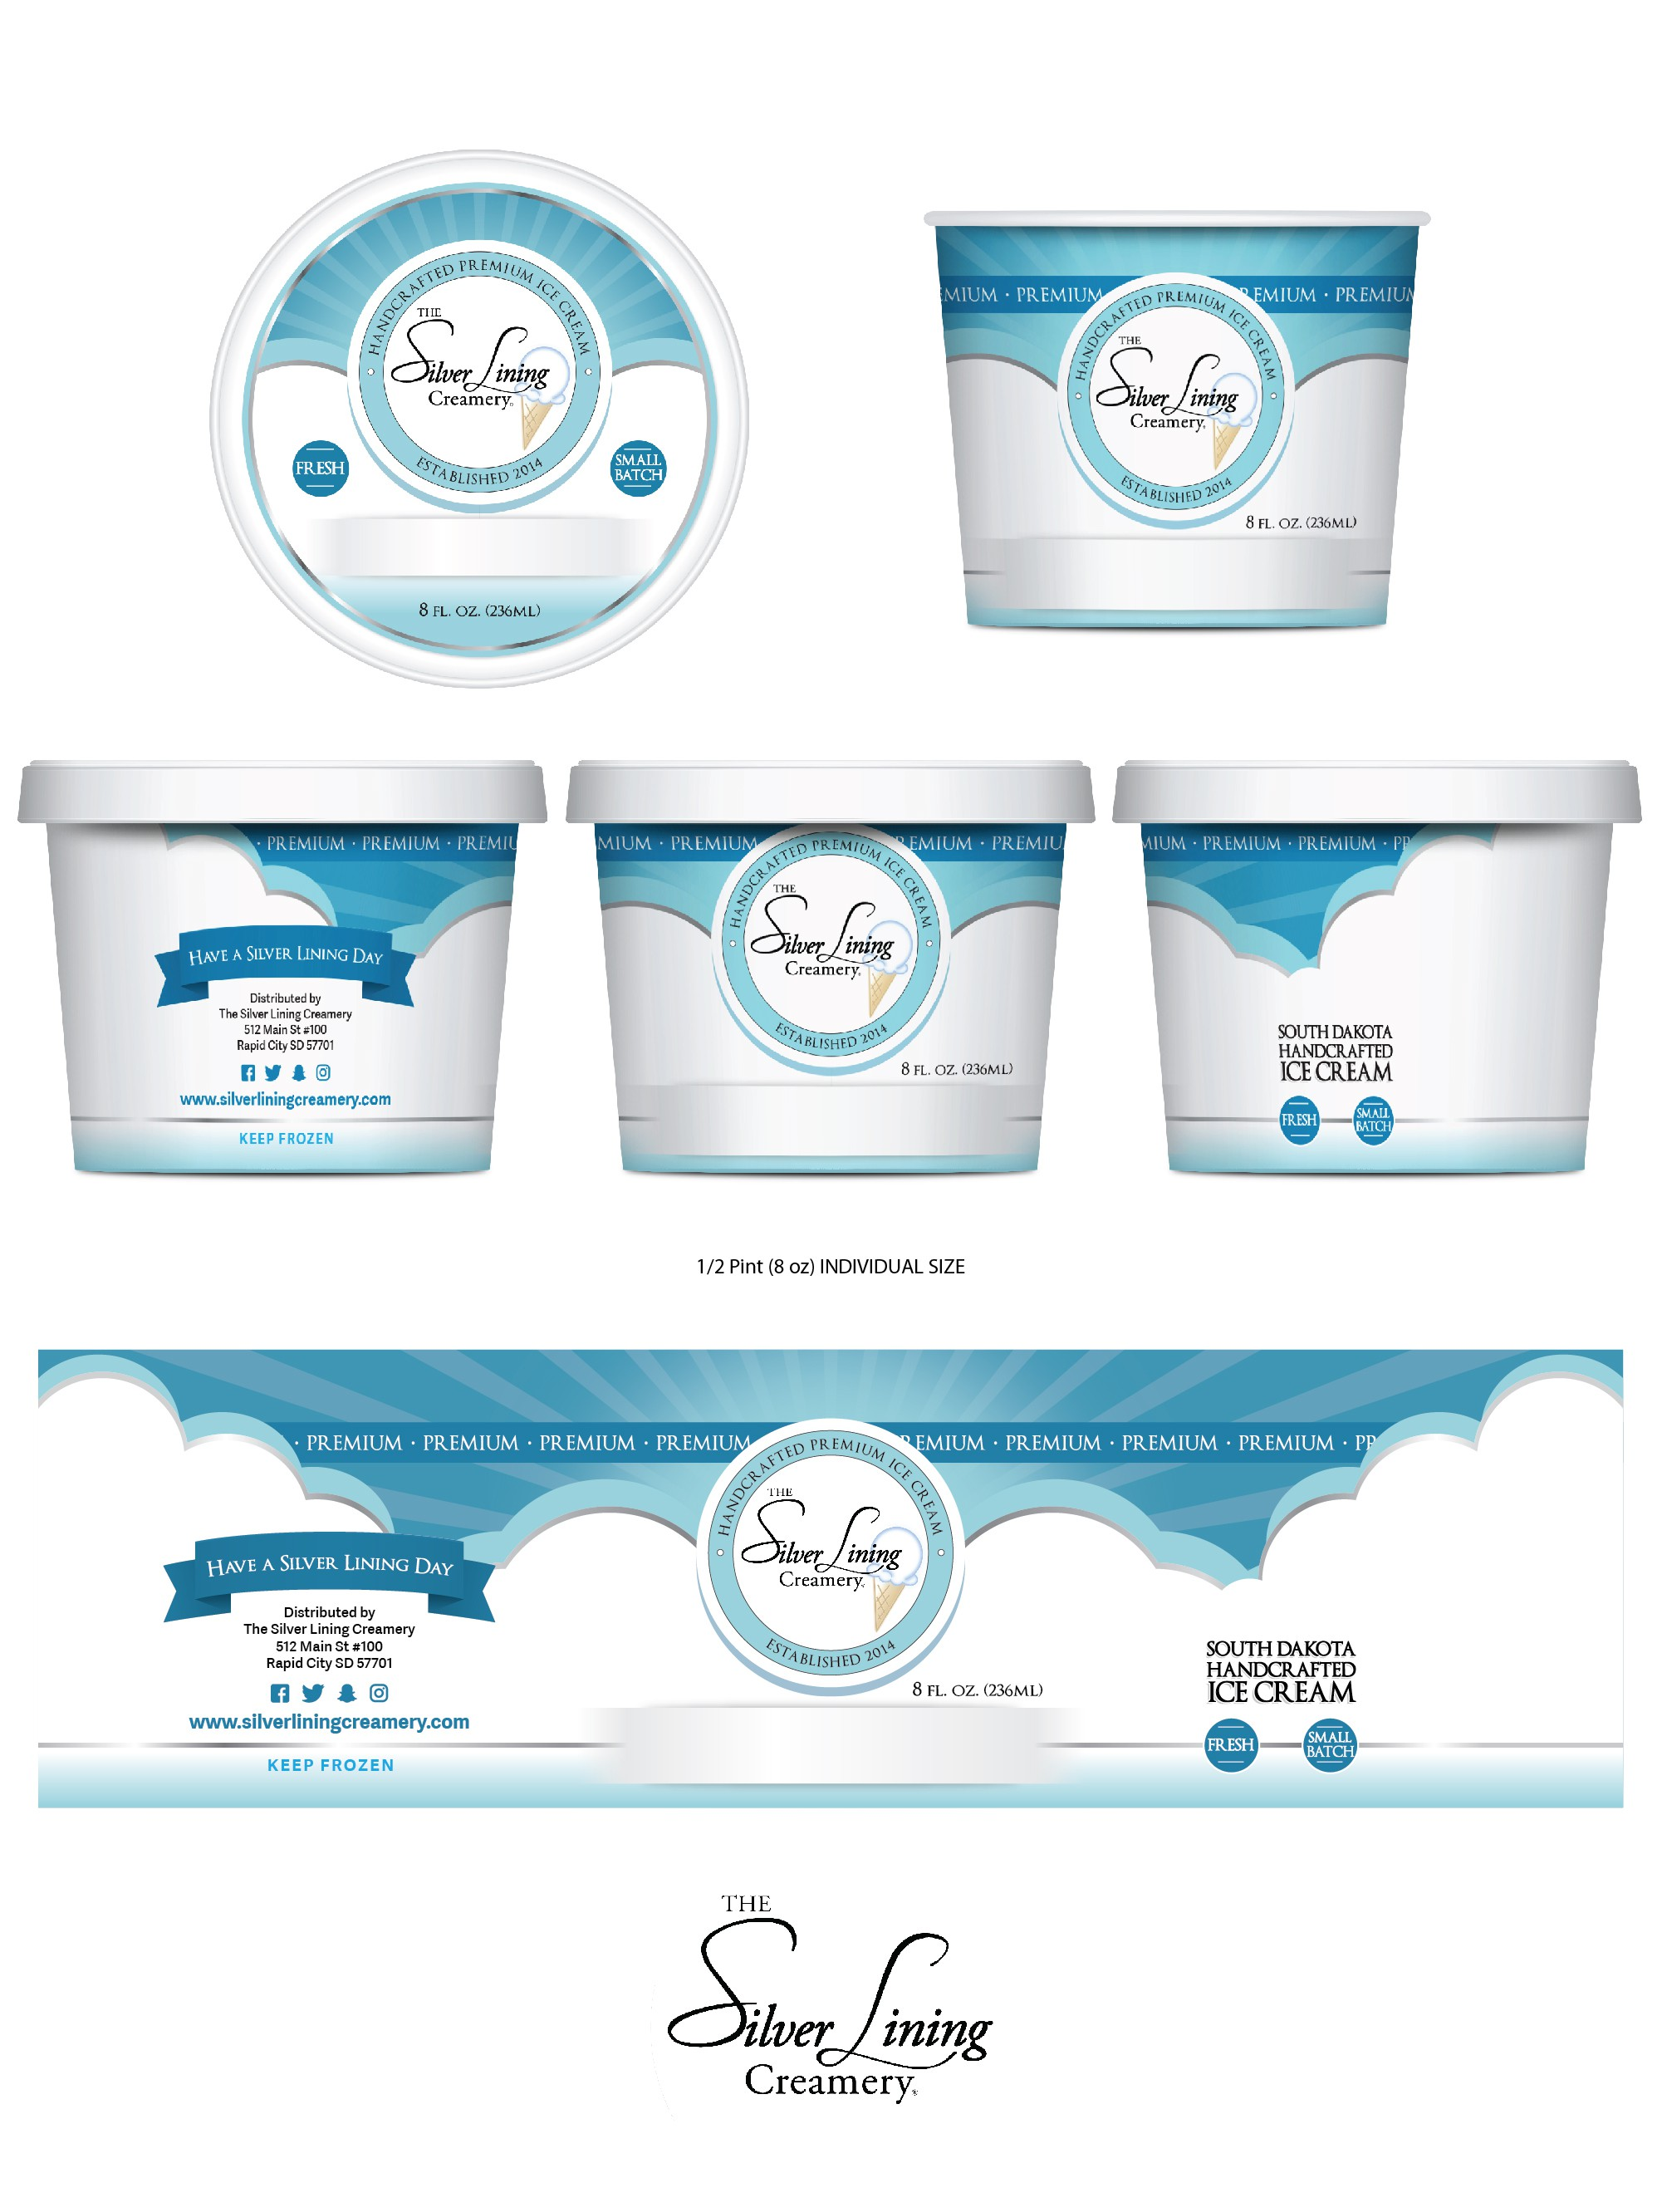 Modern packaging for the next big ice cream company